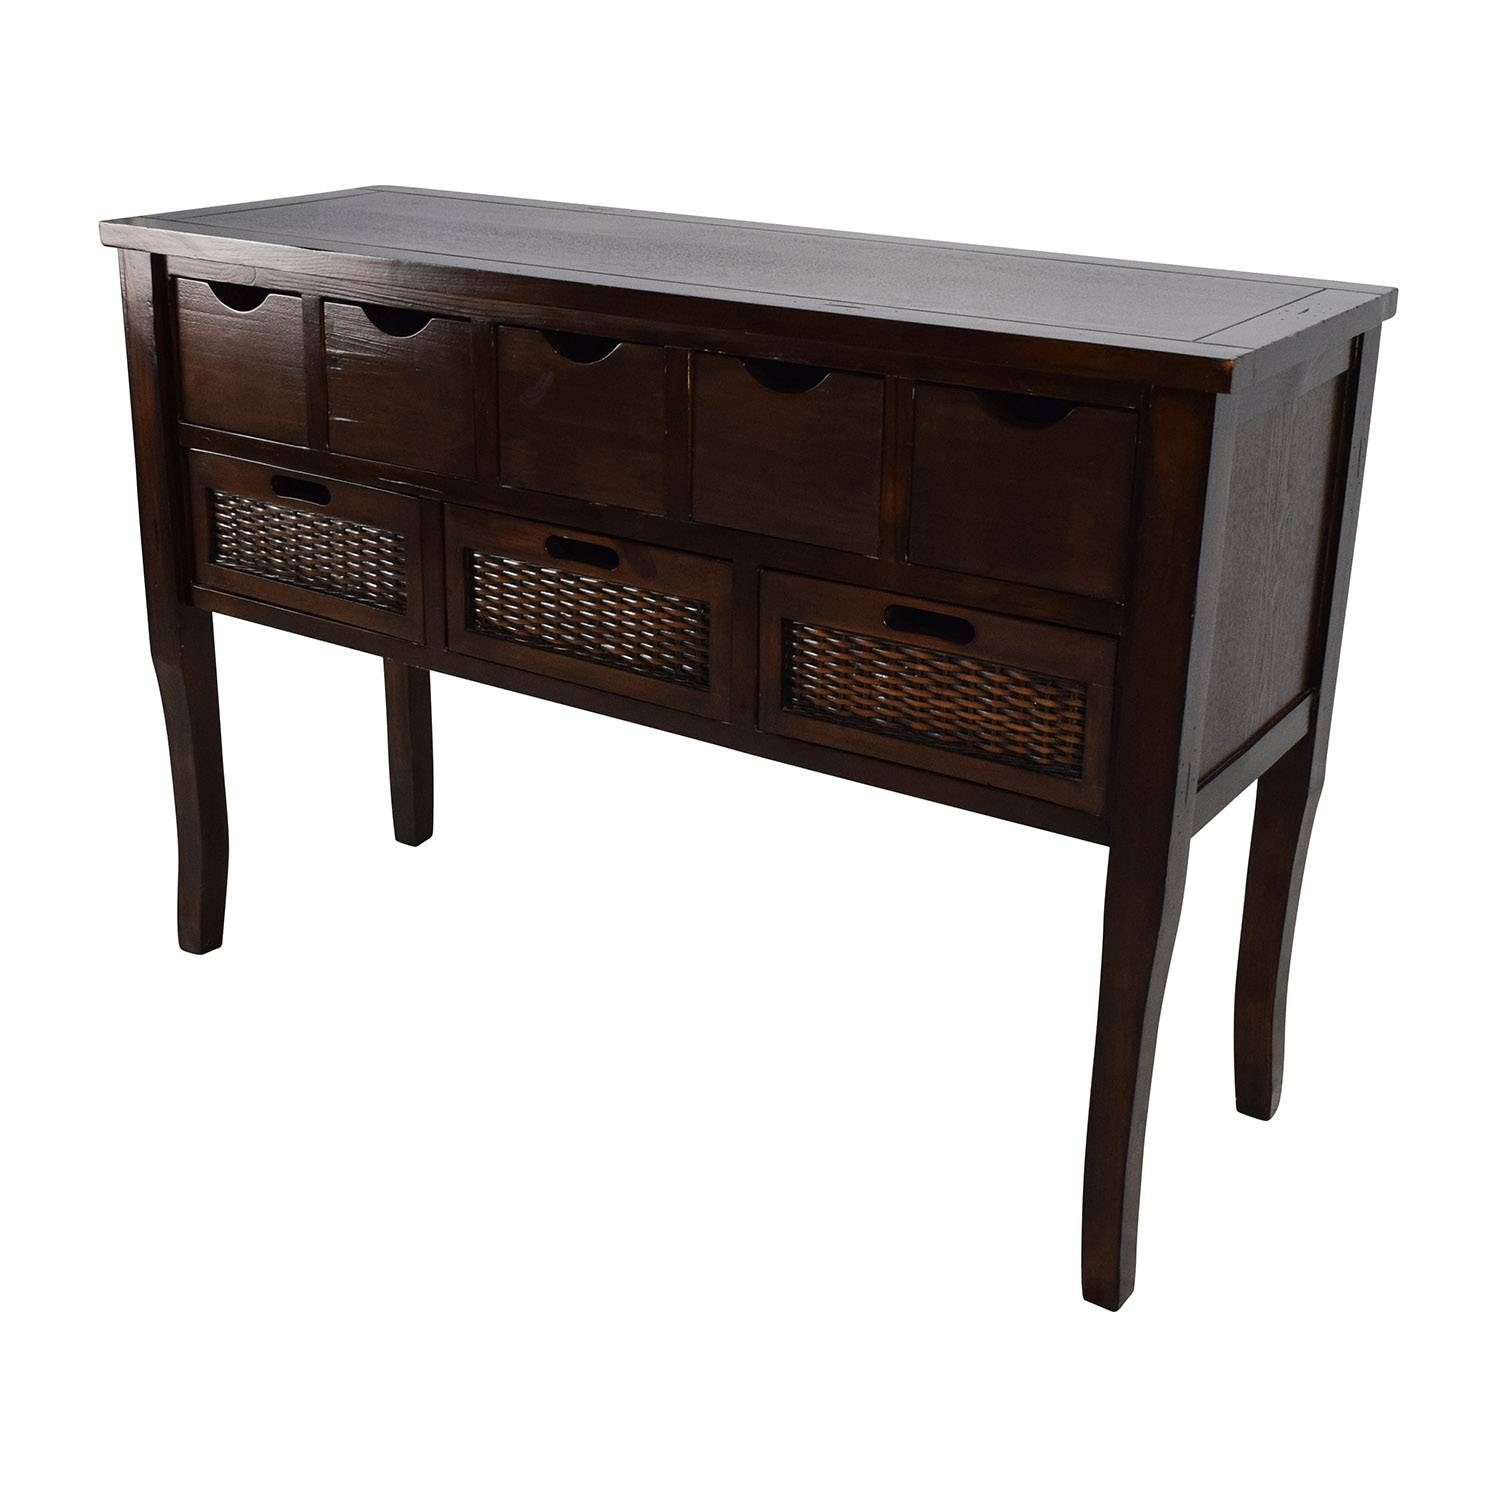 Inspiration about 65% Off – Unknown Brown Wood Multi Drawer Sideboard / Storage With Regard To Multi Drawer Sideboard (#2 of 20)